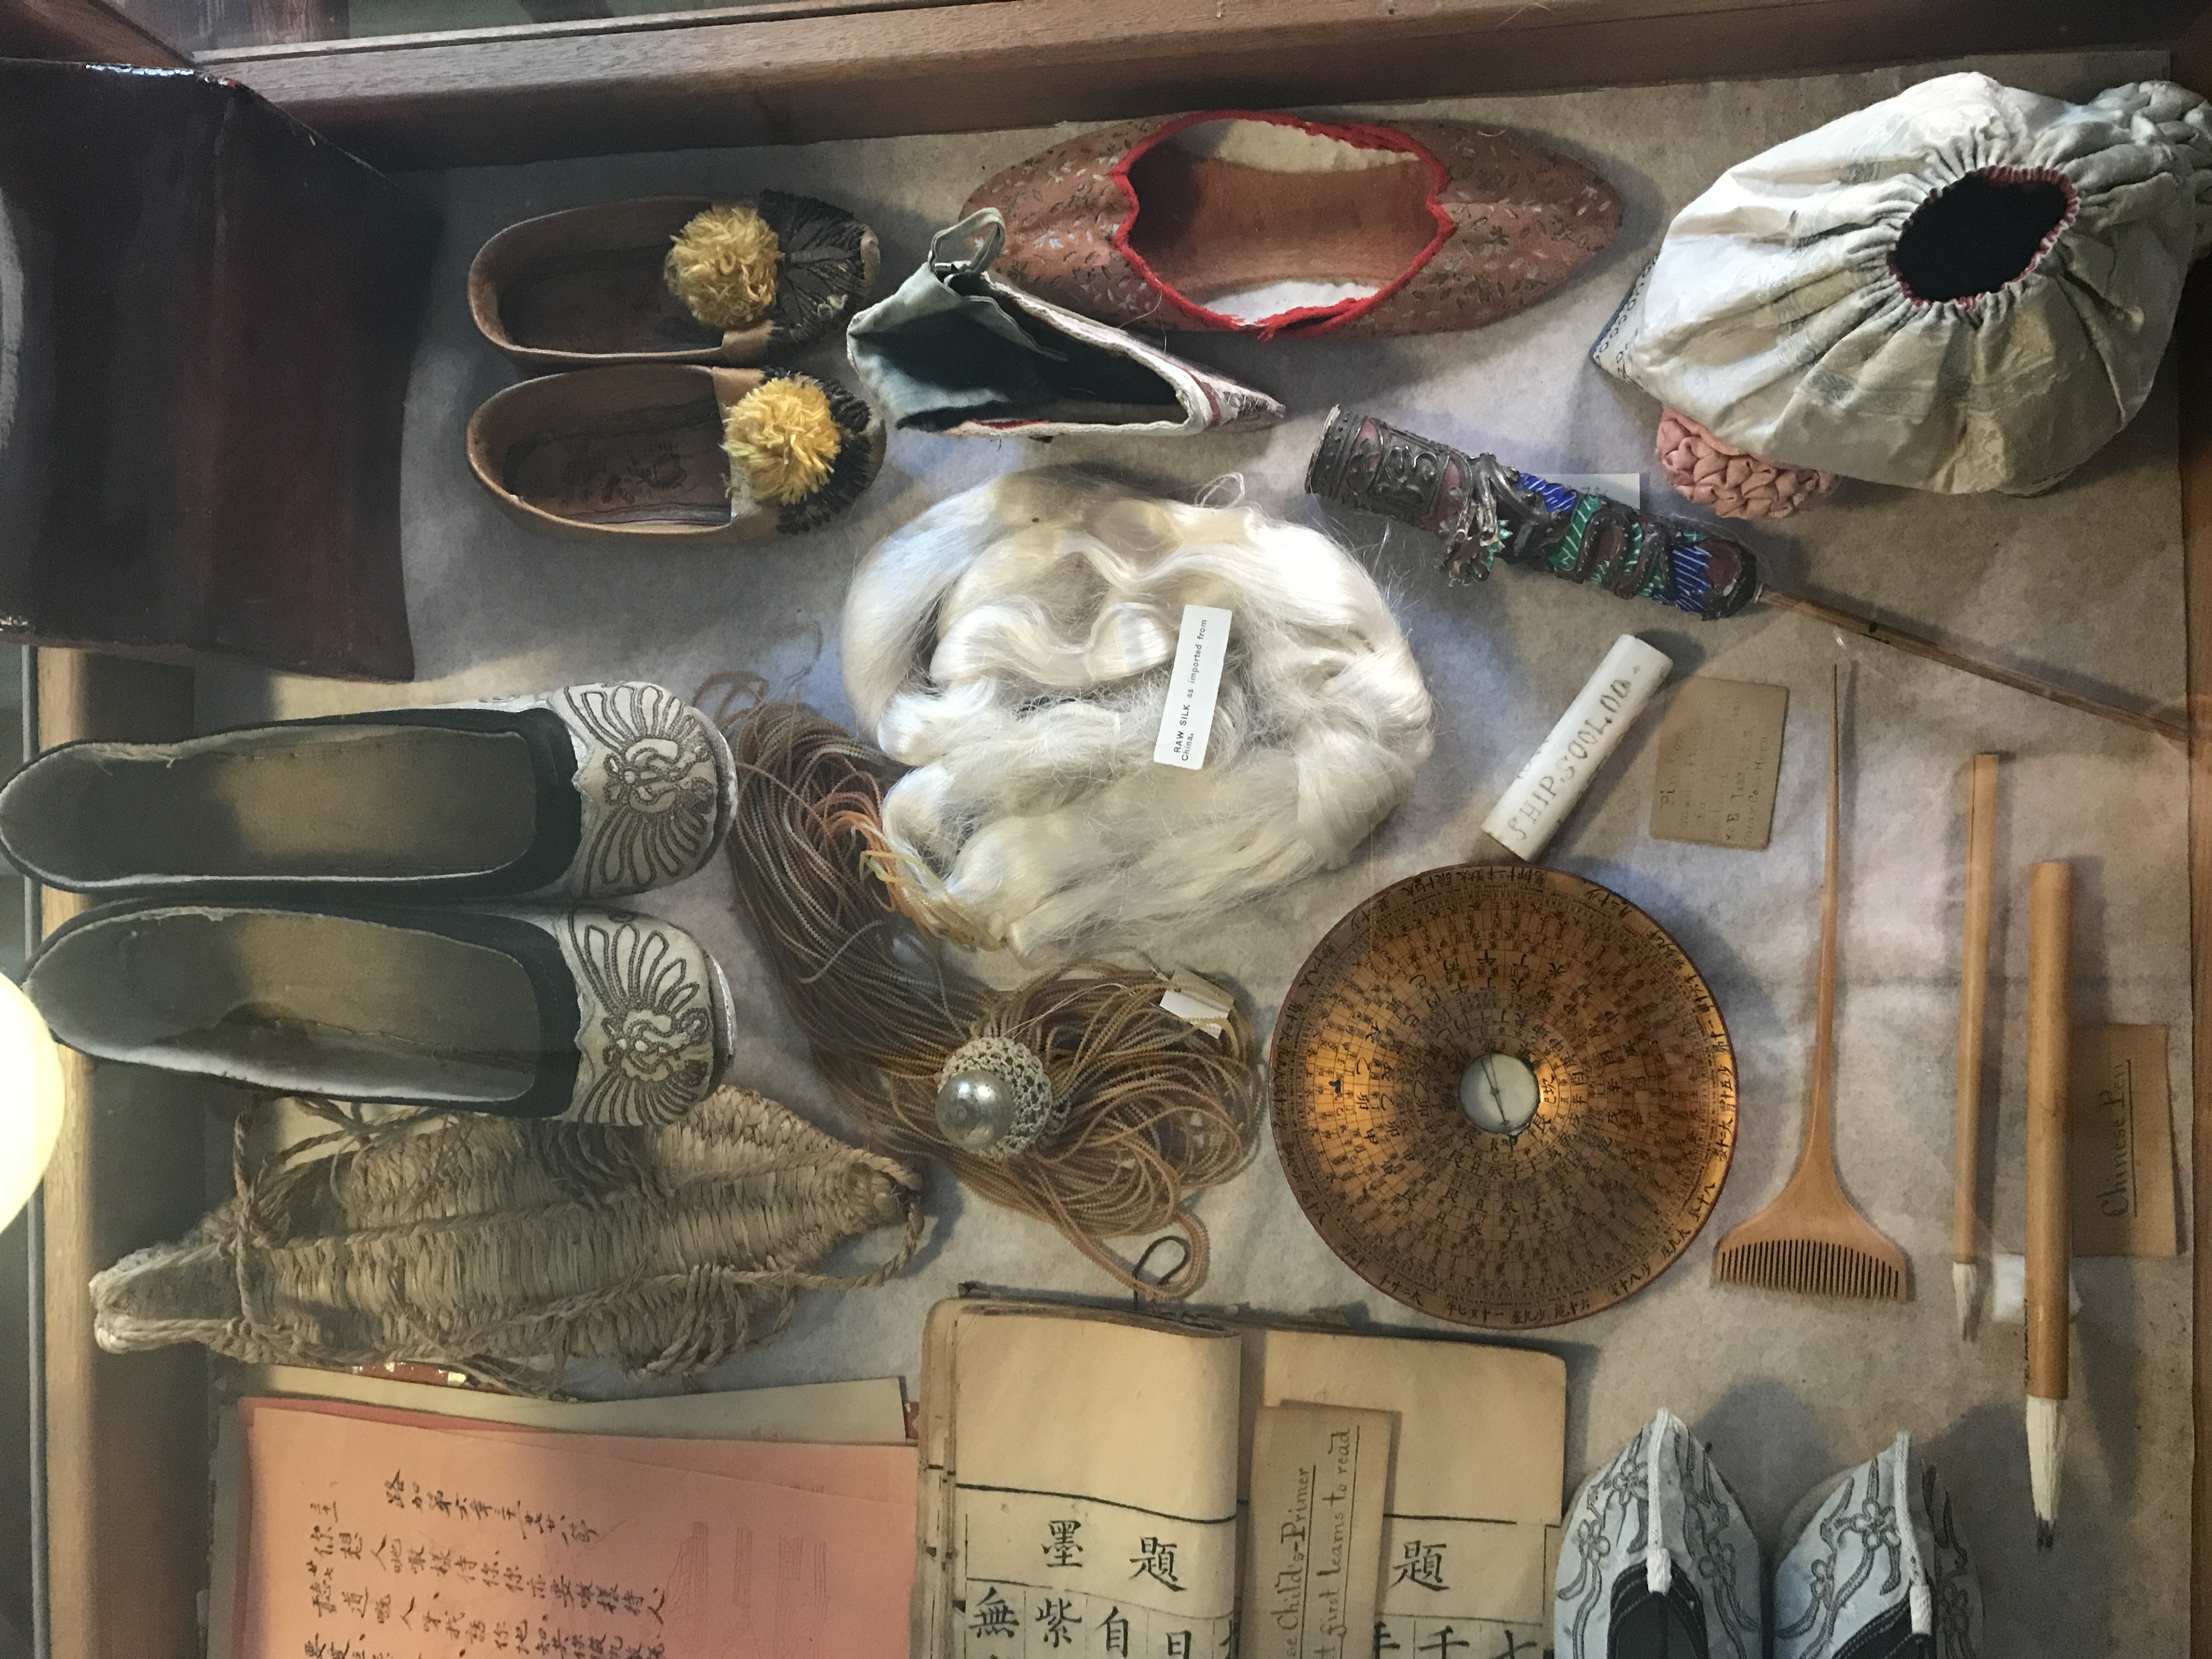 Cabinets of Curiosities – features all manner of naturalistic items such as shells, rocks, and coral. Also includes Chinese artifacts and international newspapers.